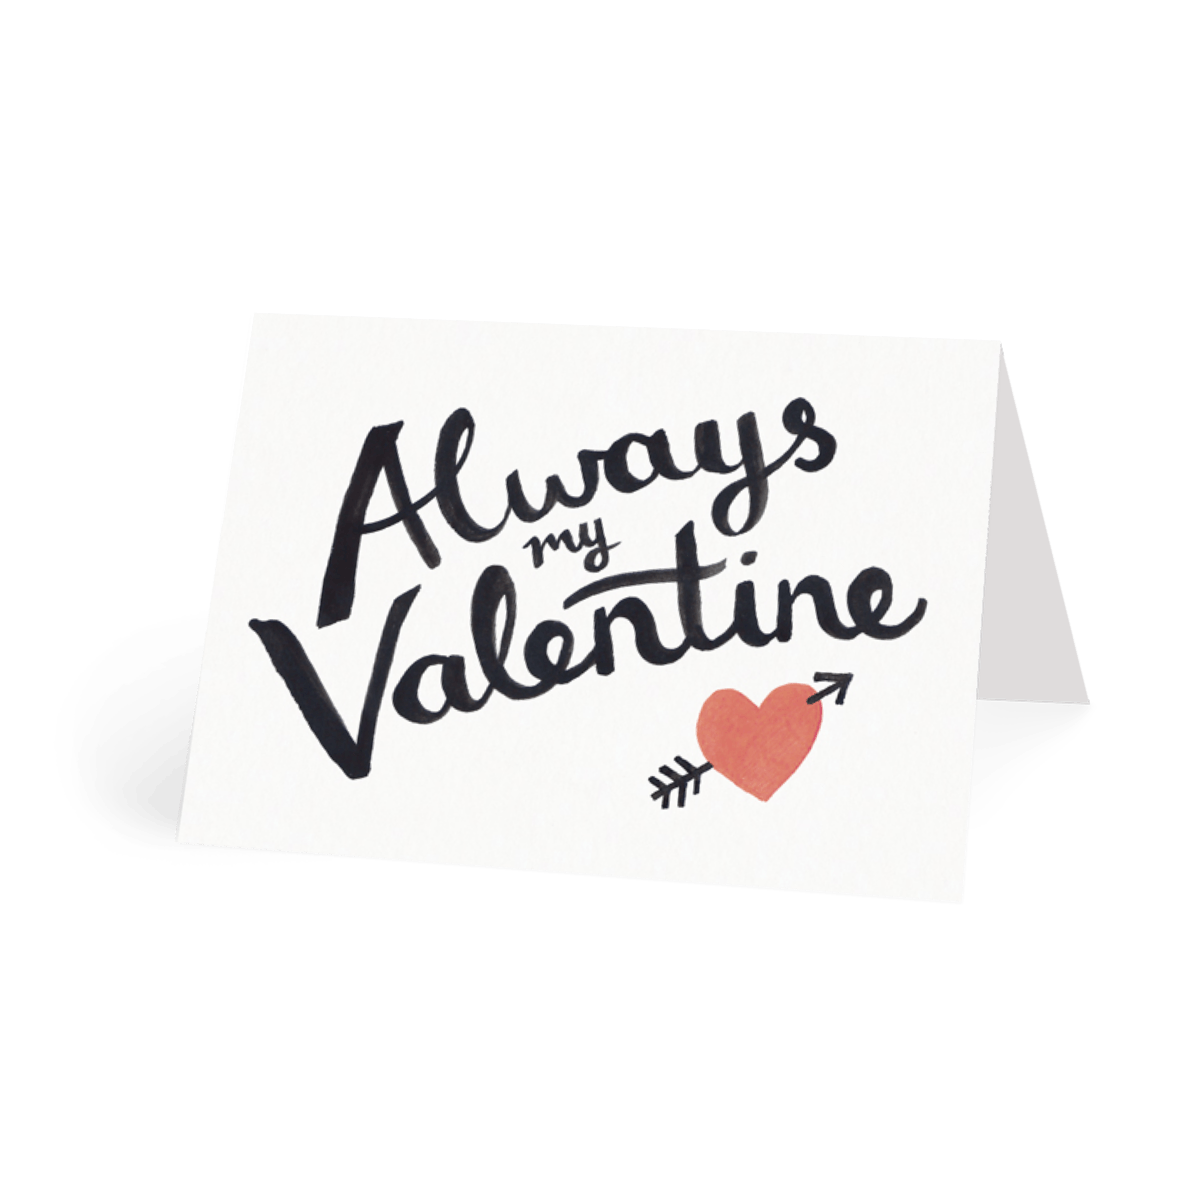 Https%3a%2f%2fwww.papier.com%2fproduct image%2f33704%2f14%2falways my valentine 8419 front 1517913461.png?ixlib=rb 1.1